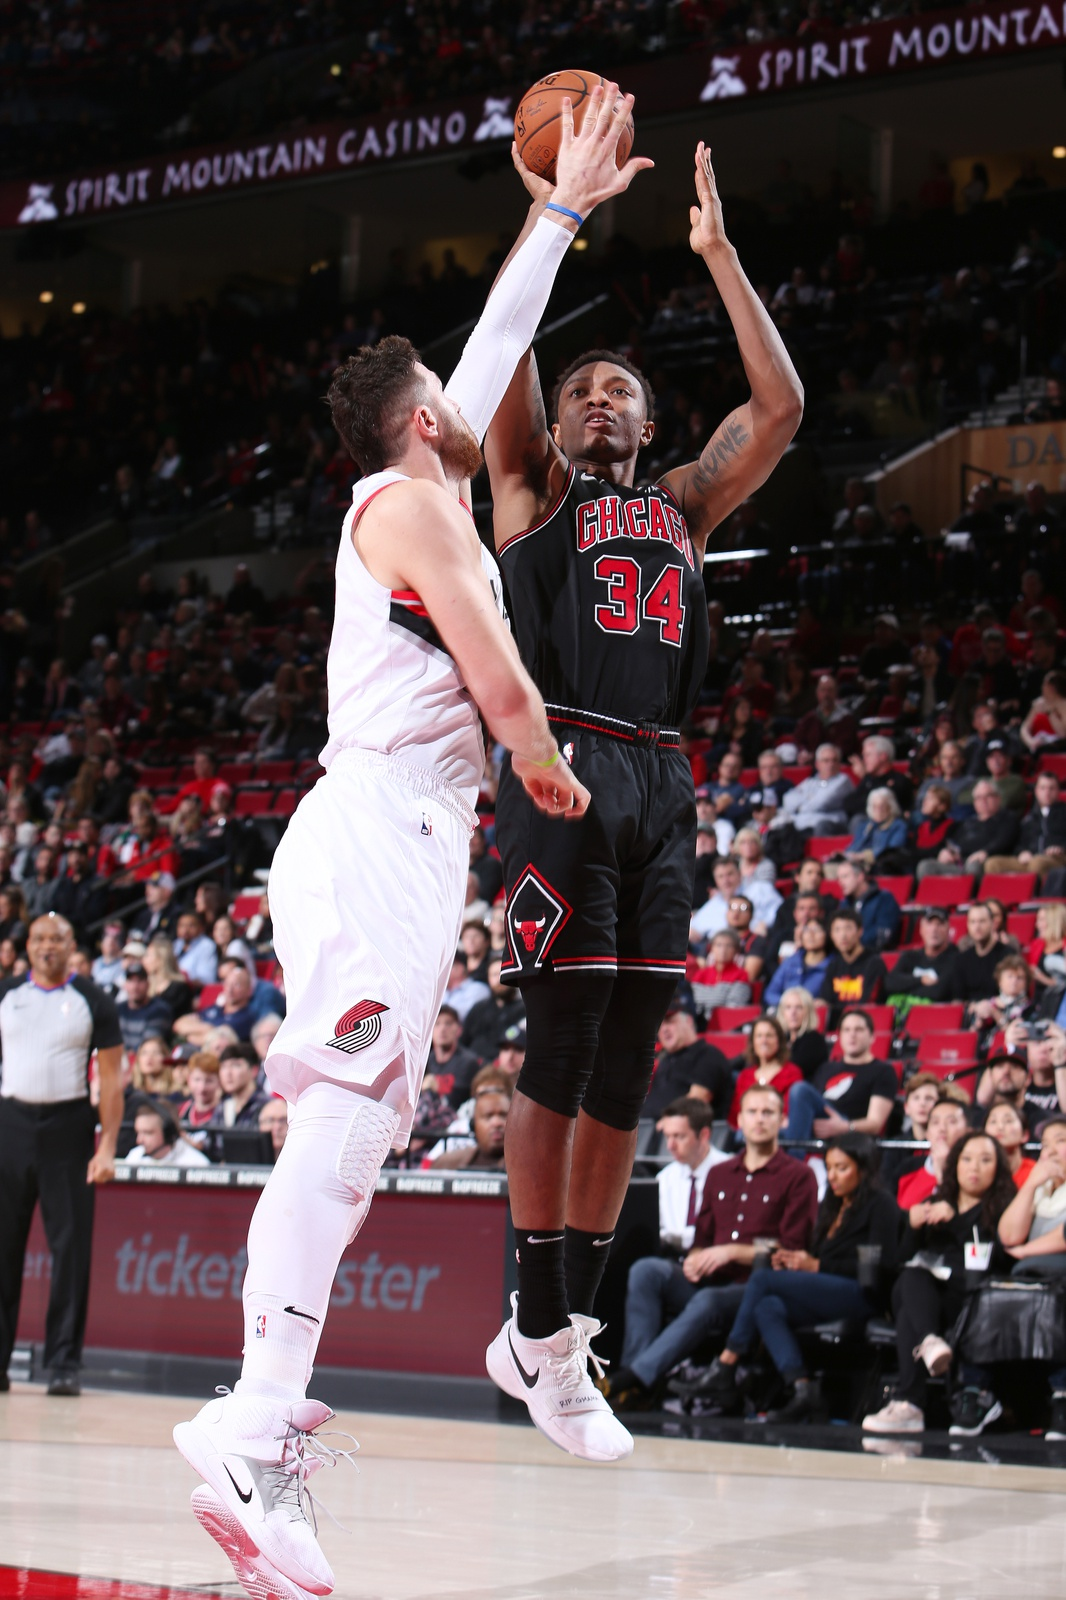 Wendell Carter Jr. #34 of the Chicago Bulls handles the ball against the Portland Trail Blazers on January 9, 2019 at the Moda Center Arena in Portland, Oregon.